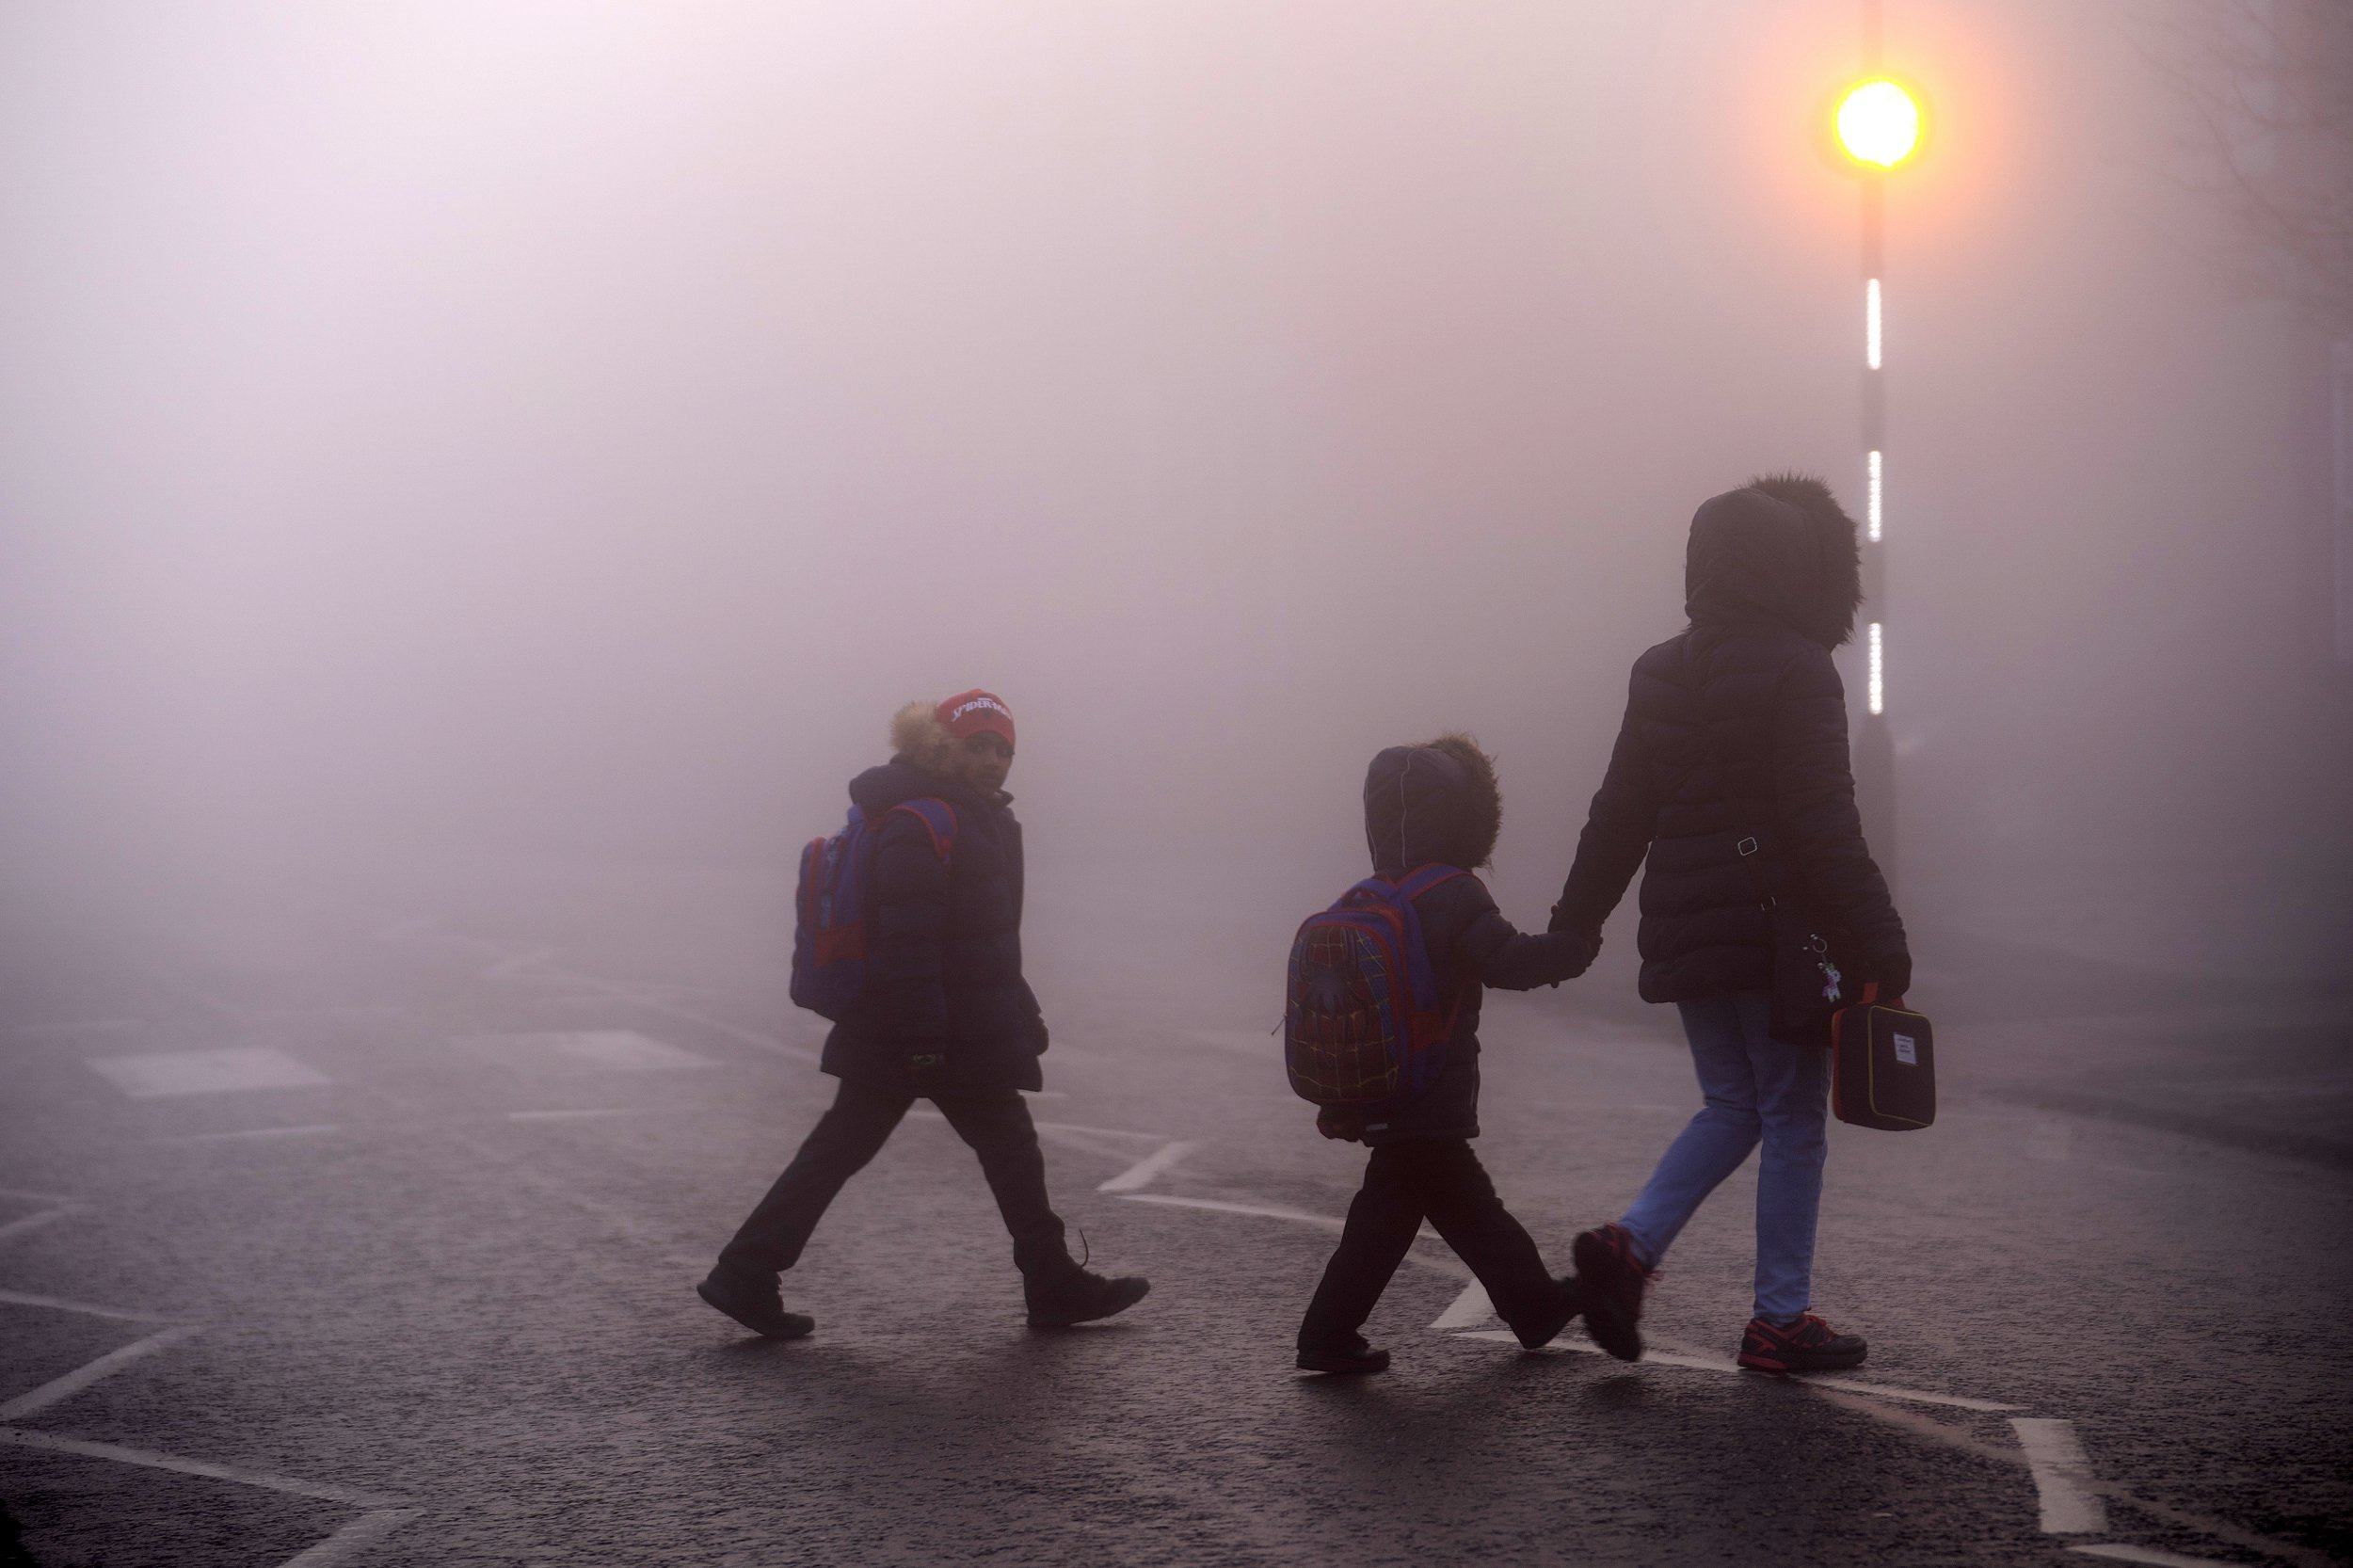 NORTHWICH, ENGLAND - DECEMBER 04: A family make their way to school as freezing temperatures create a cold and foggy start for parts of England and Wales on December 04, 2018 in Northwich, England. (Photo by Christopher Furlong/Getty Images)